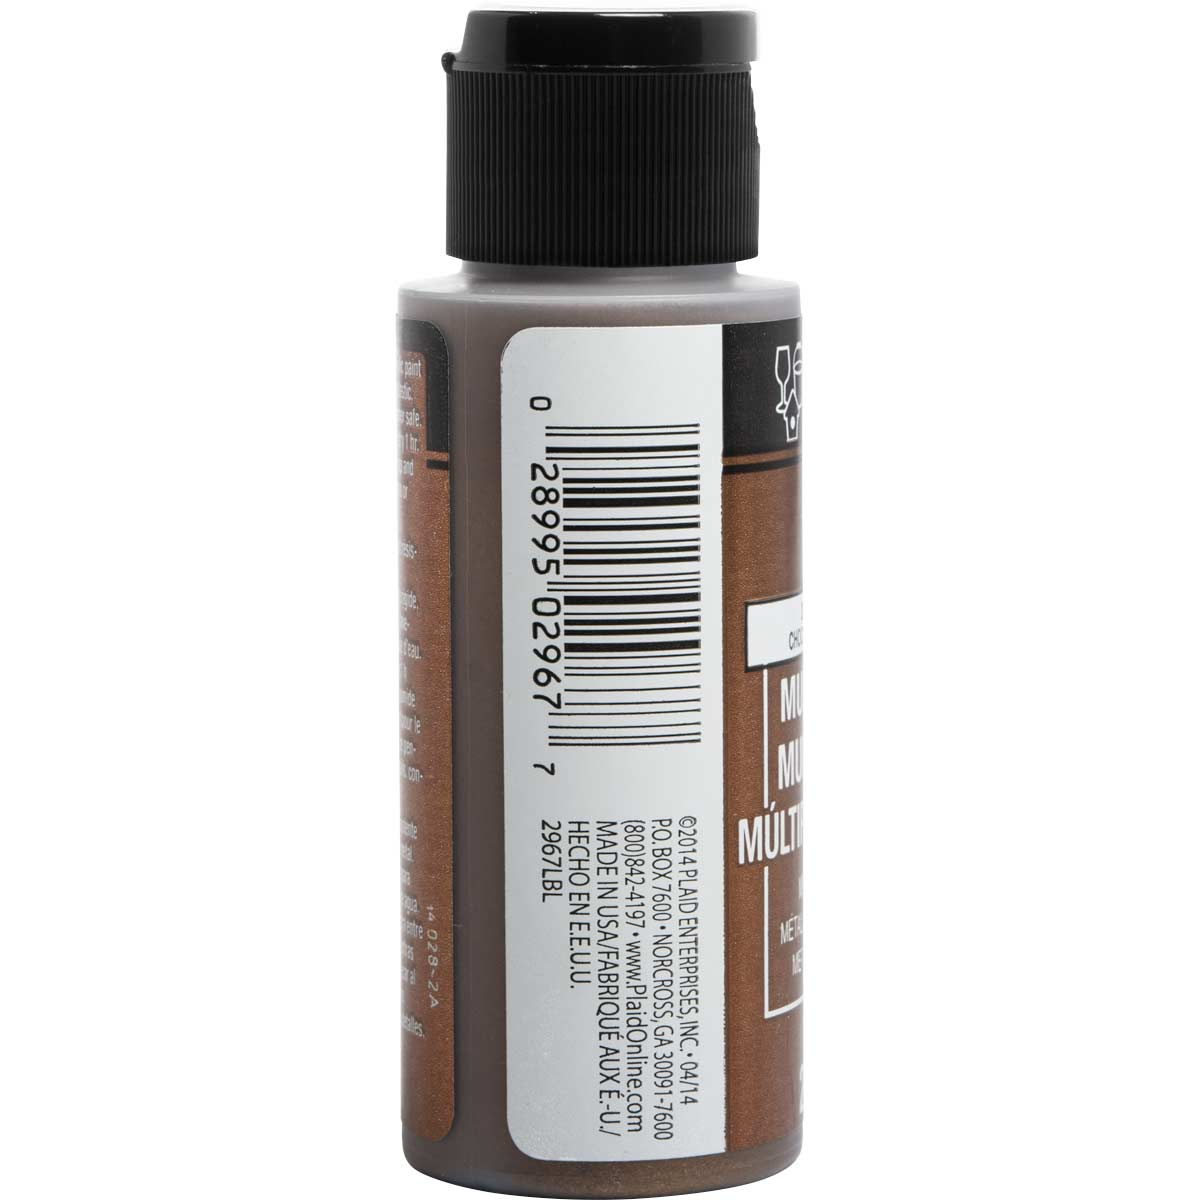 FolkArt ® Multi-Surface Metallic Acrylic Paints - Chocolate Brown, 2 oz. - 2967